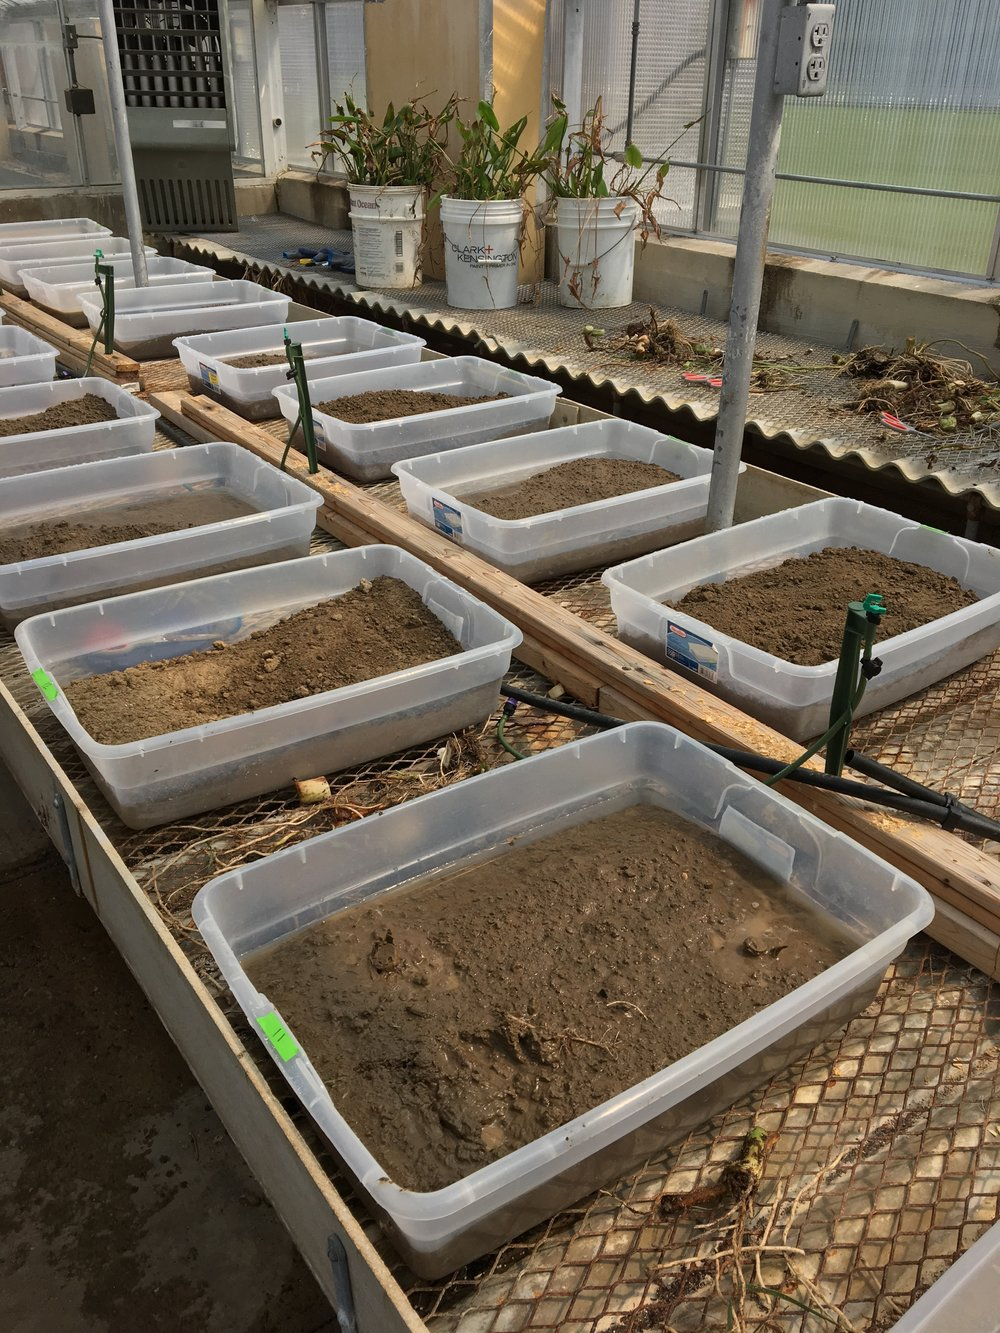 Elephant ear project bins in the LSU greenhouse.